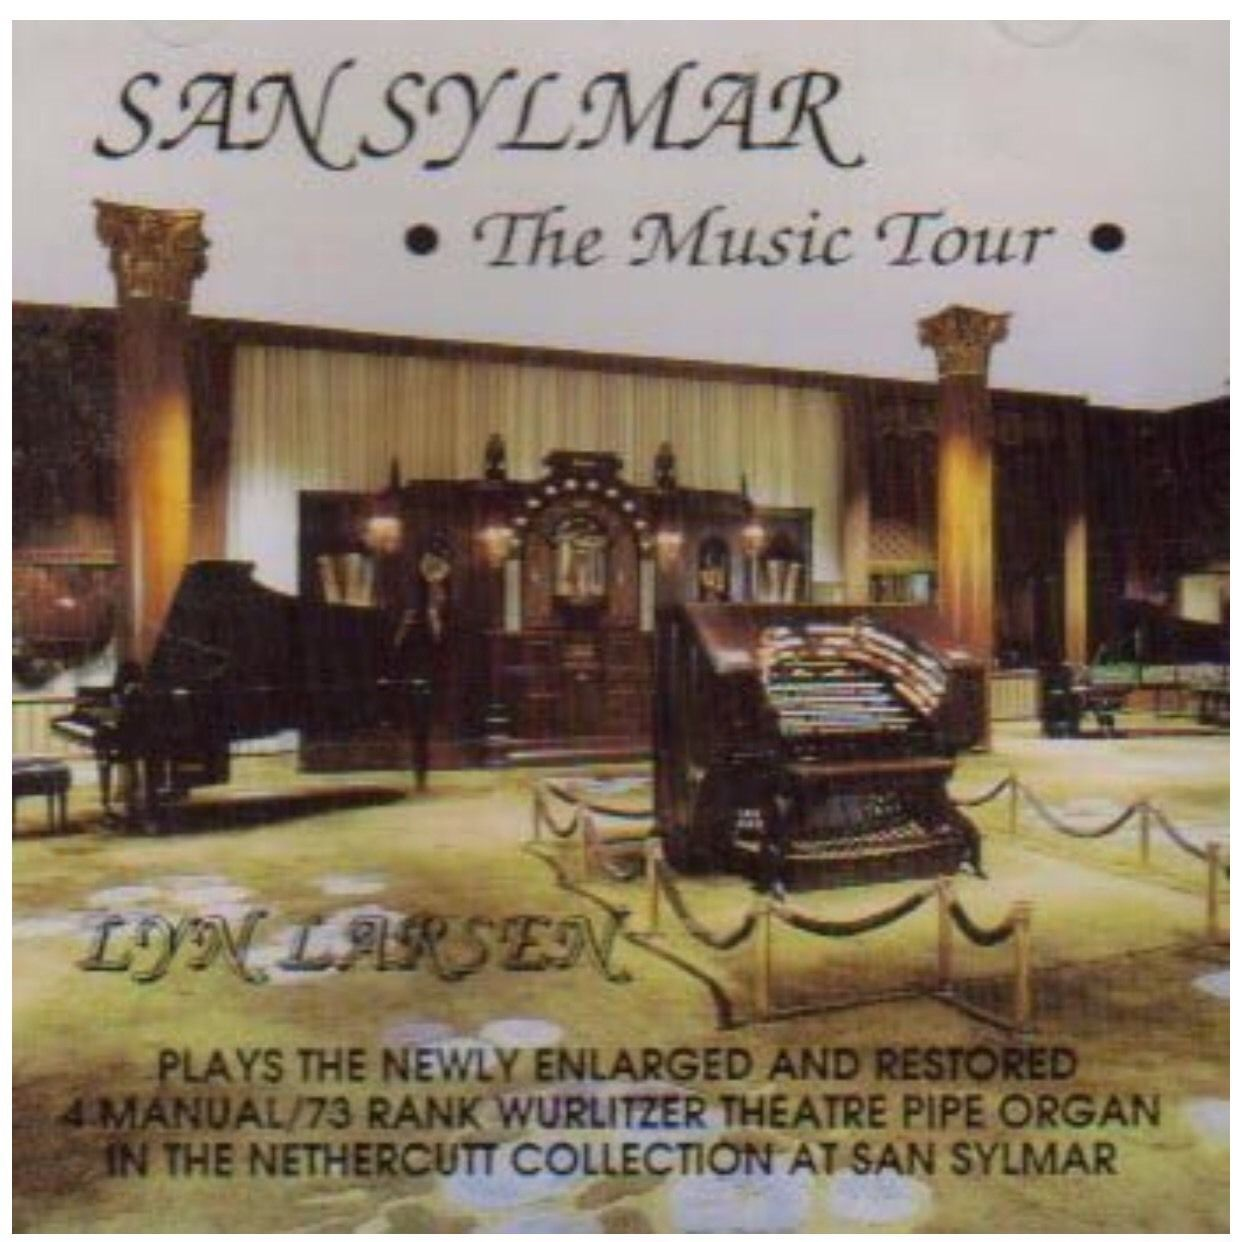 San Sylmar The Music Tour Lyn Larsen Manual Rank Wurlitzer Theater Organ Bonus